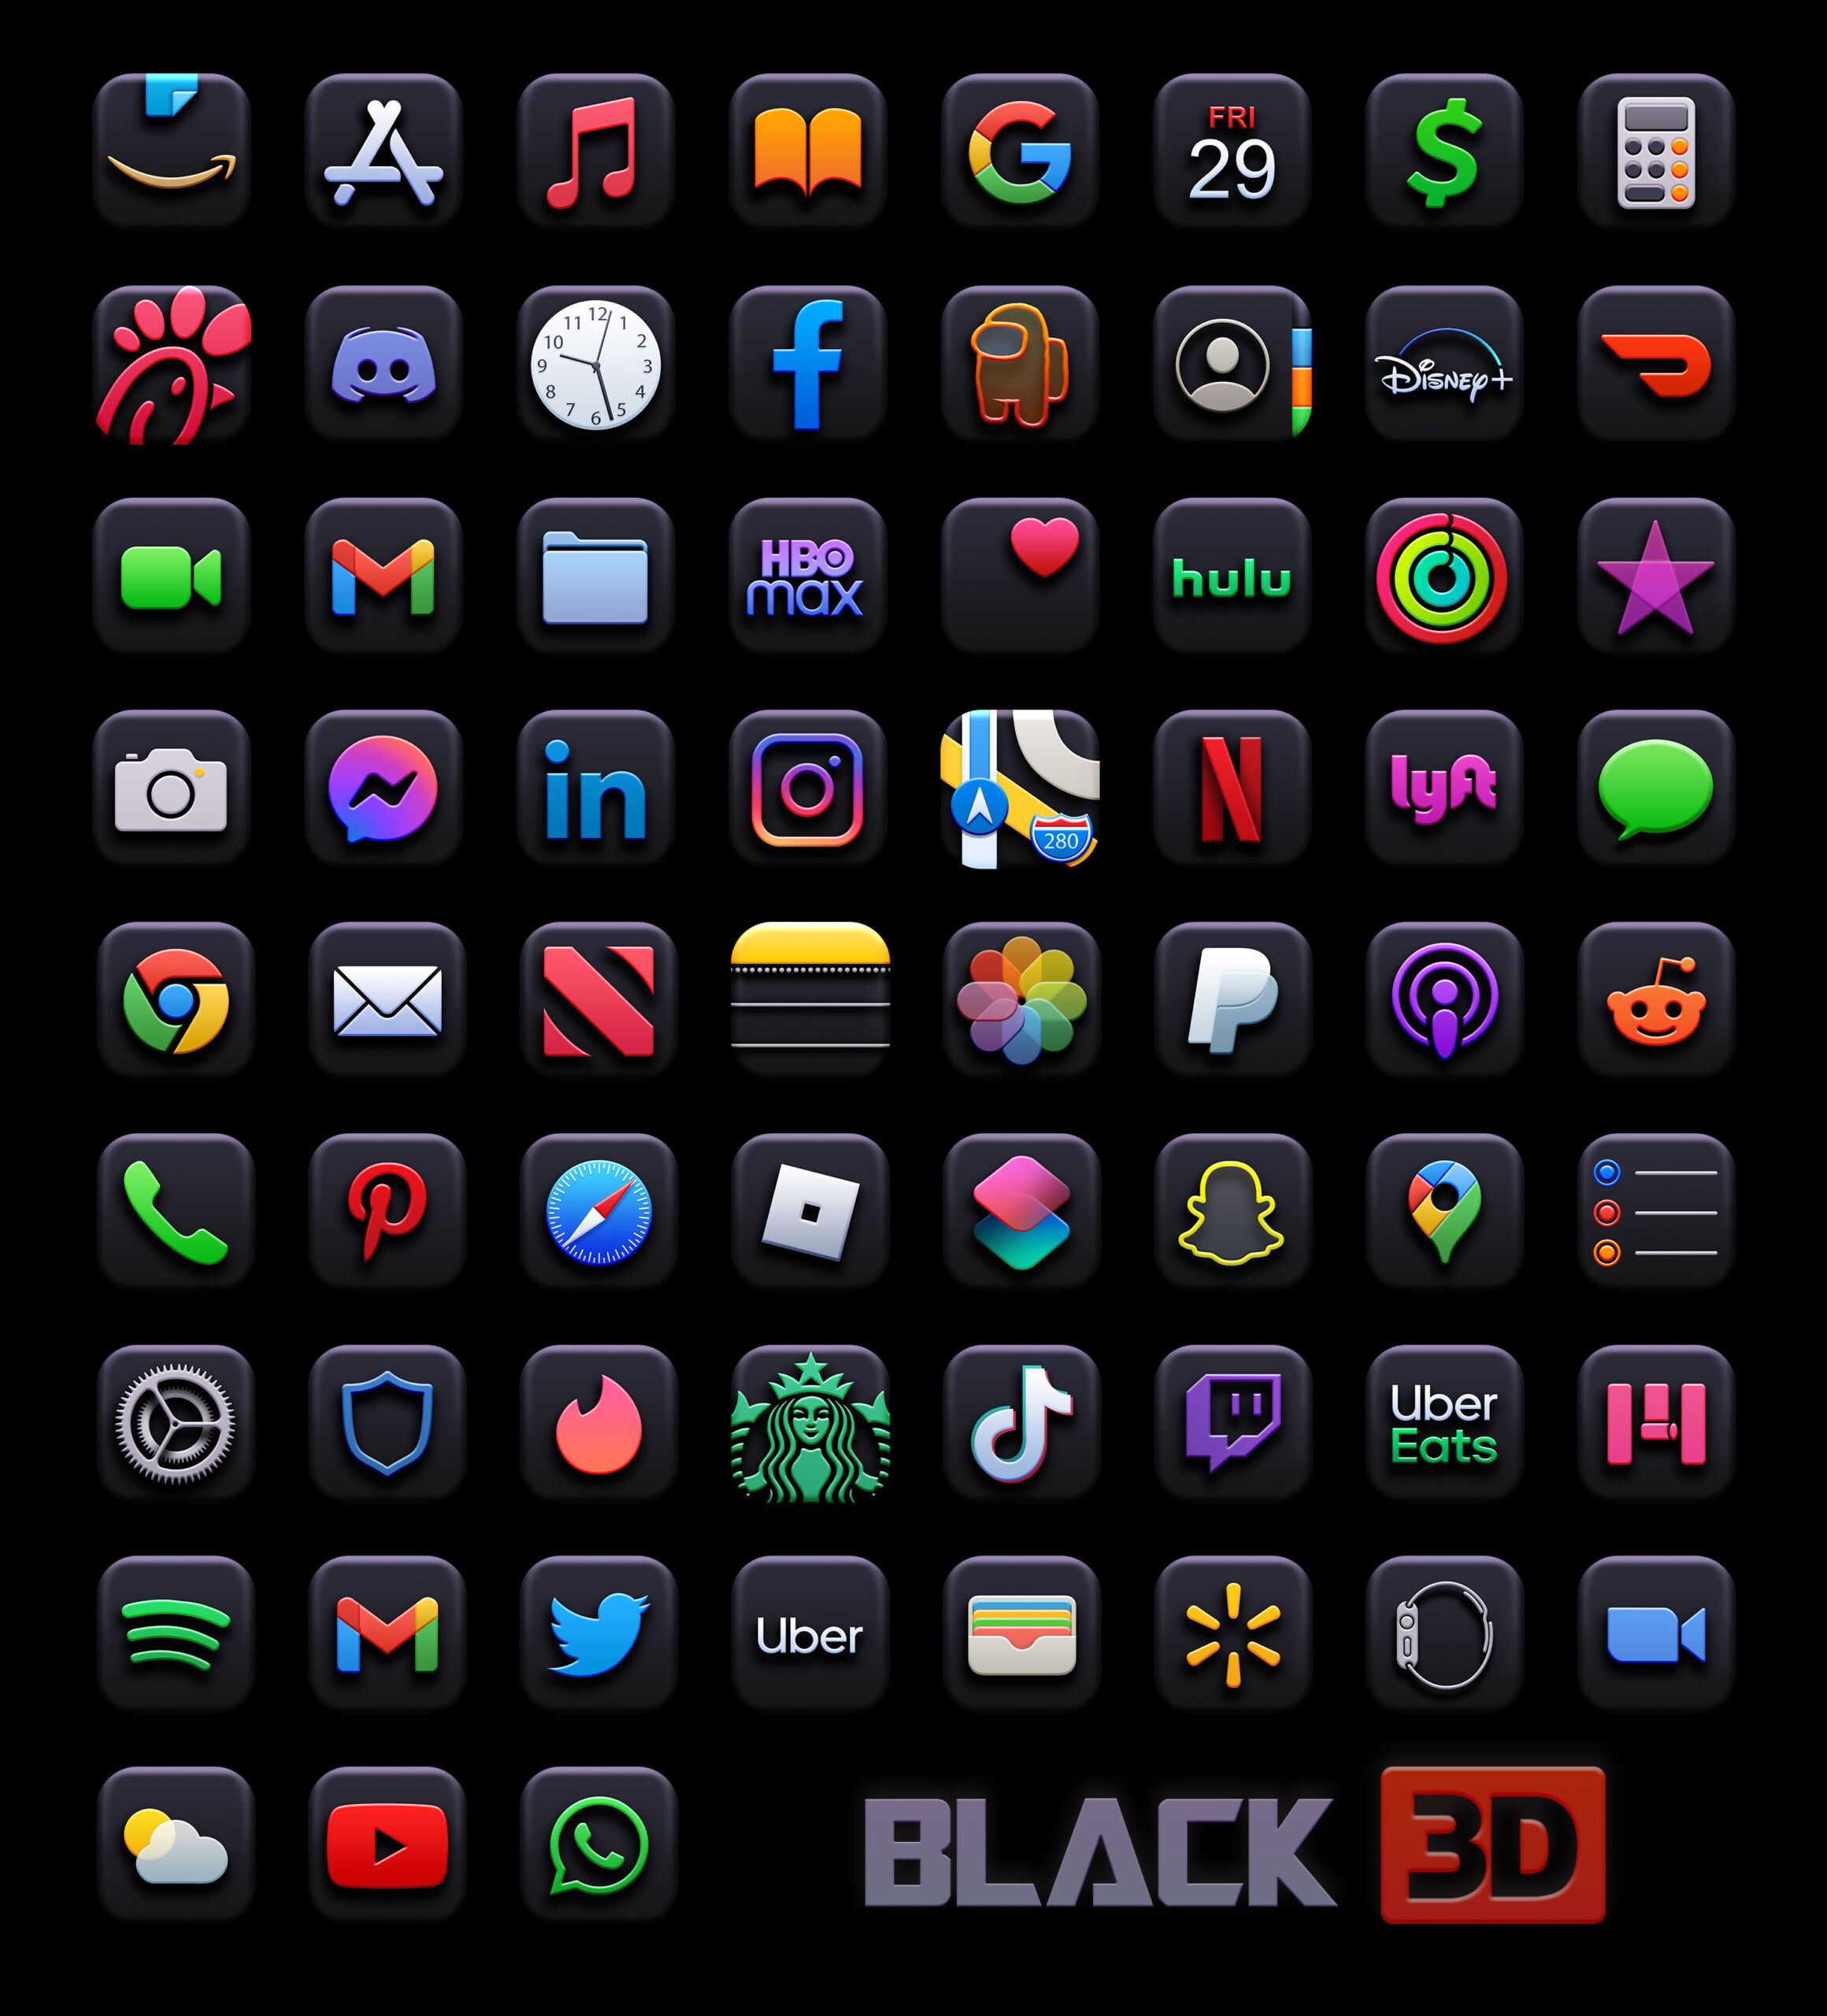 black 3d app icons pack preview 3